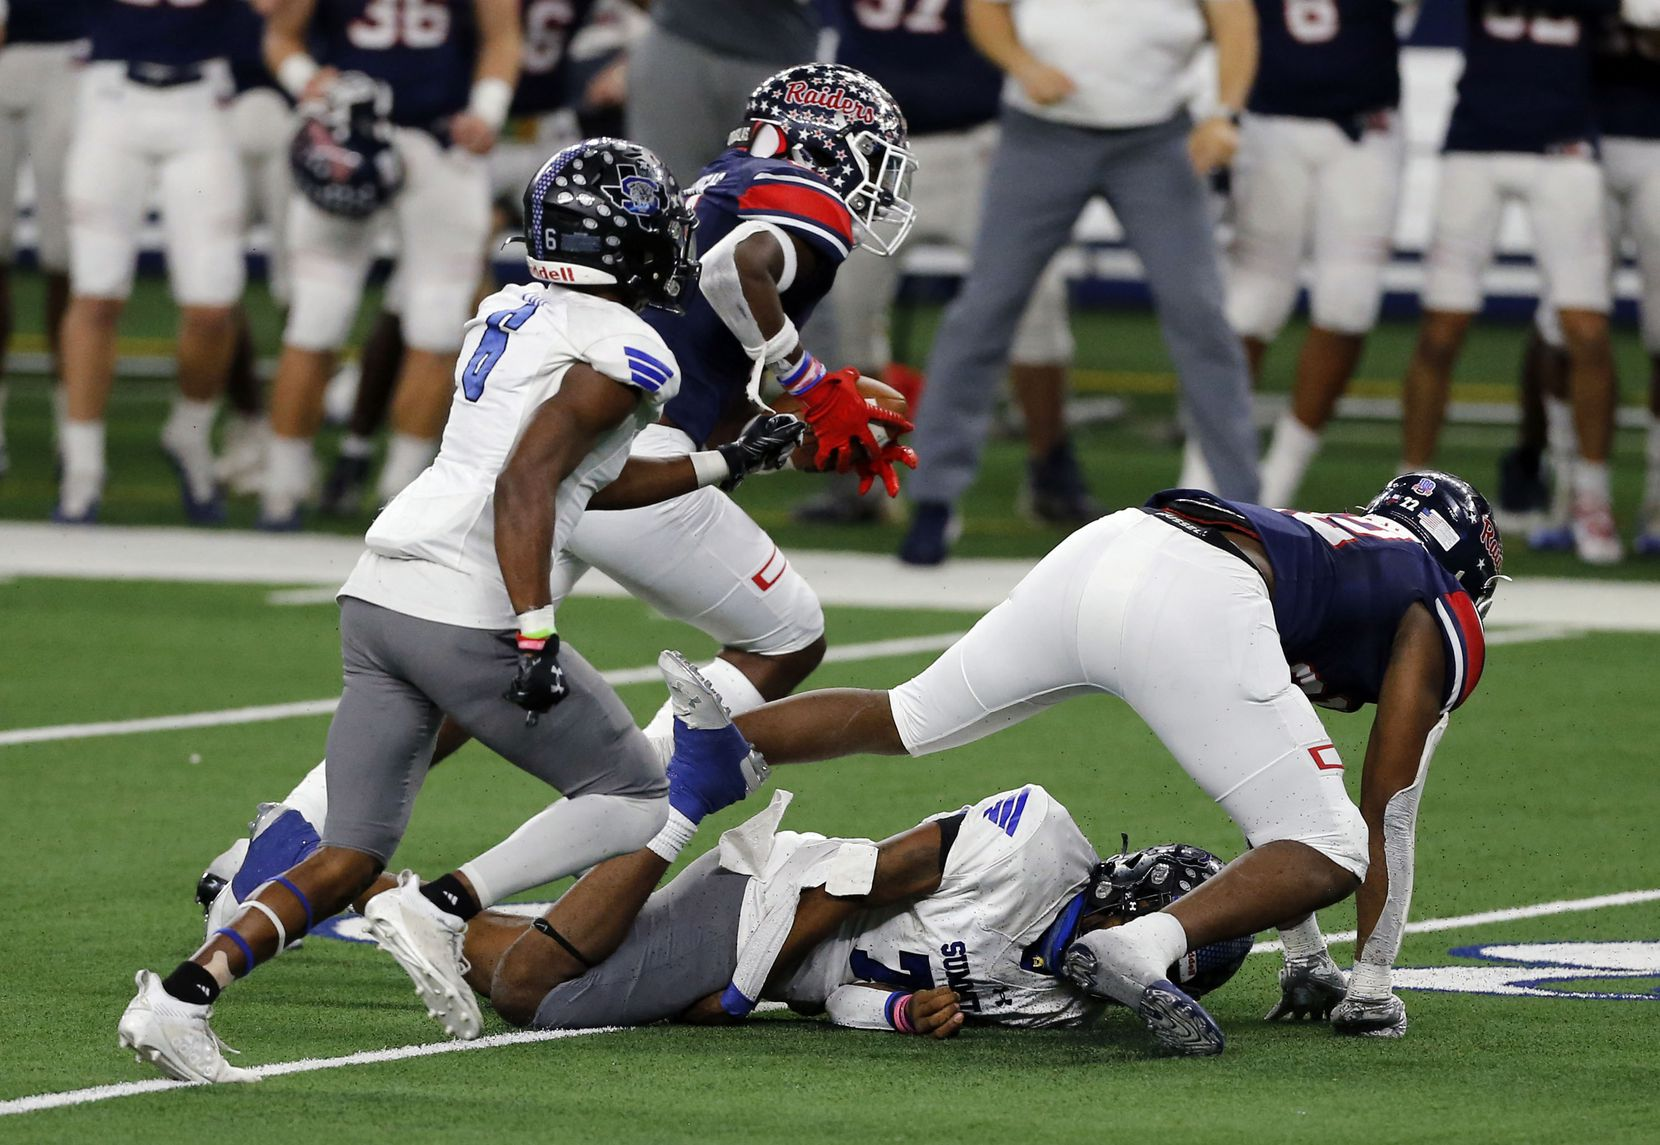 Denton Ryan defender MarQuice Hill Jr. (22) forces a fumble from Mansfield Summit Qb David Hopkins (7). Ryan's DJ Arkansas (21) recovered an advanced it for a touchdown during the second half of the Class 5A Division I state semifinal football playoff game at AT&T Stadium in Arlington on Friday, January 8, 2021. Ryan won 49-35. (John F. Rhodes / Special Contributor)